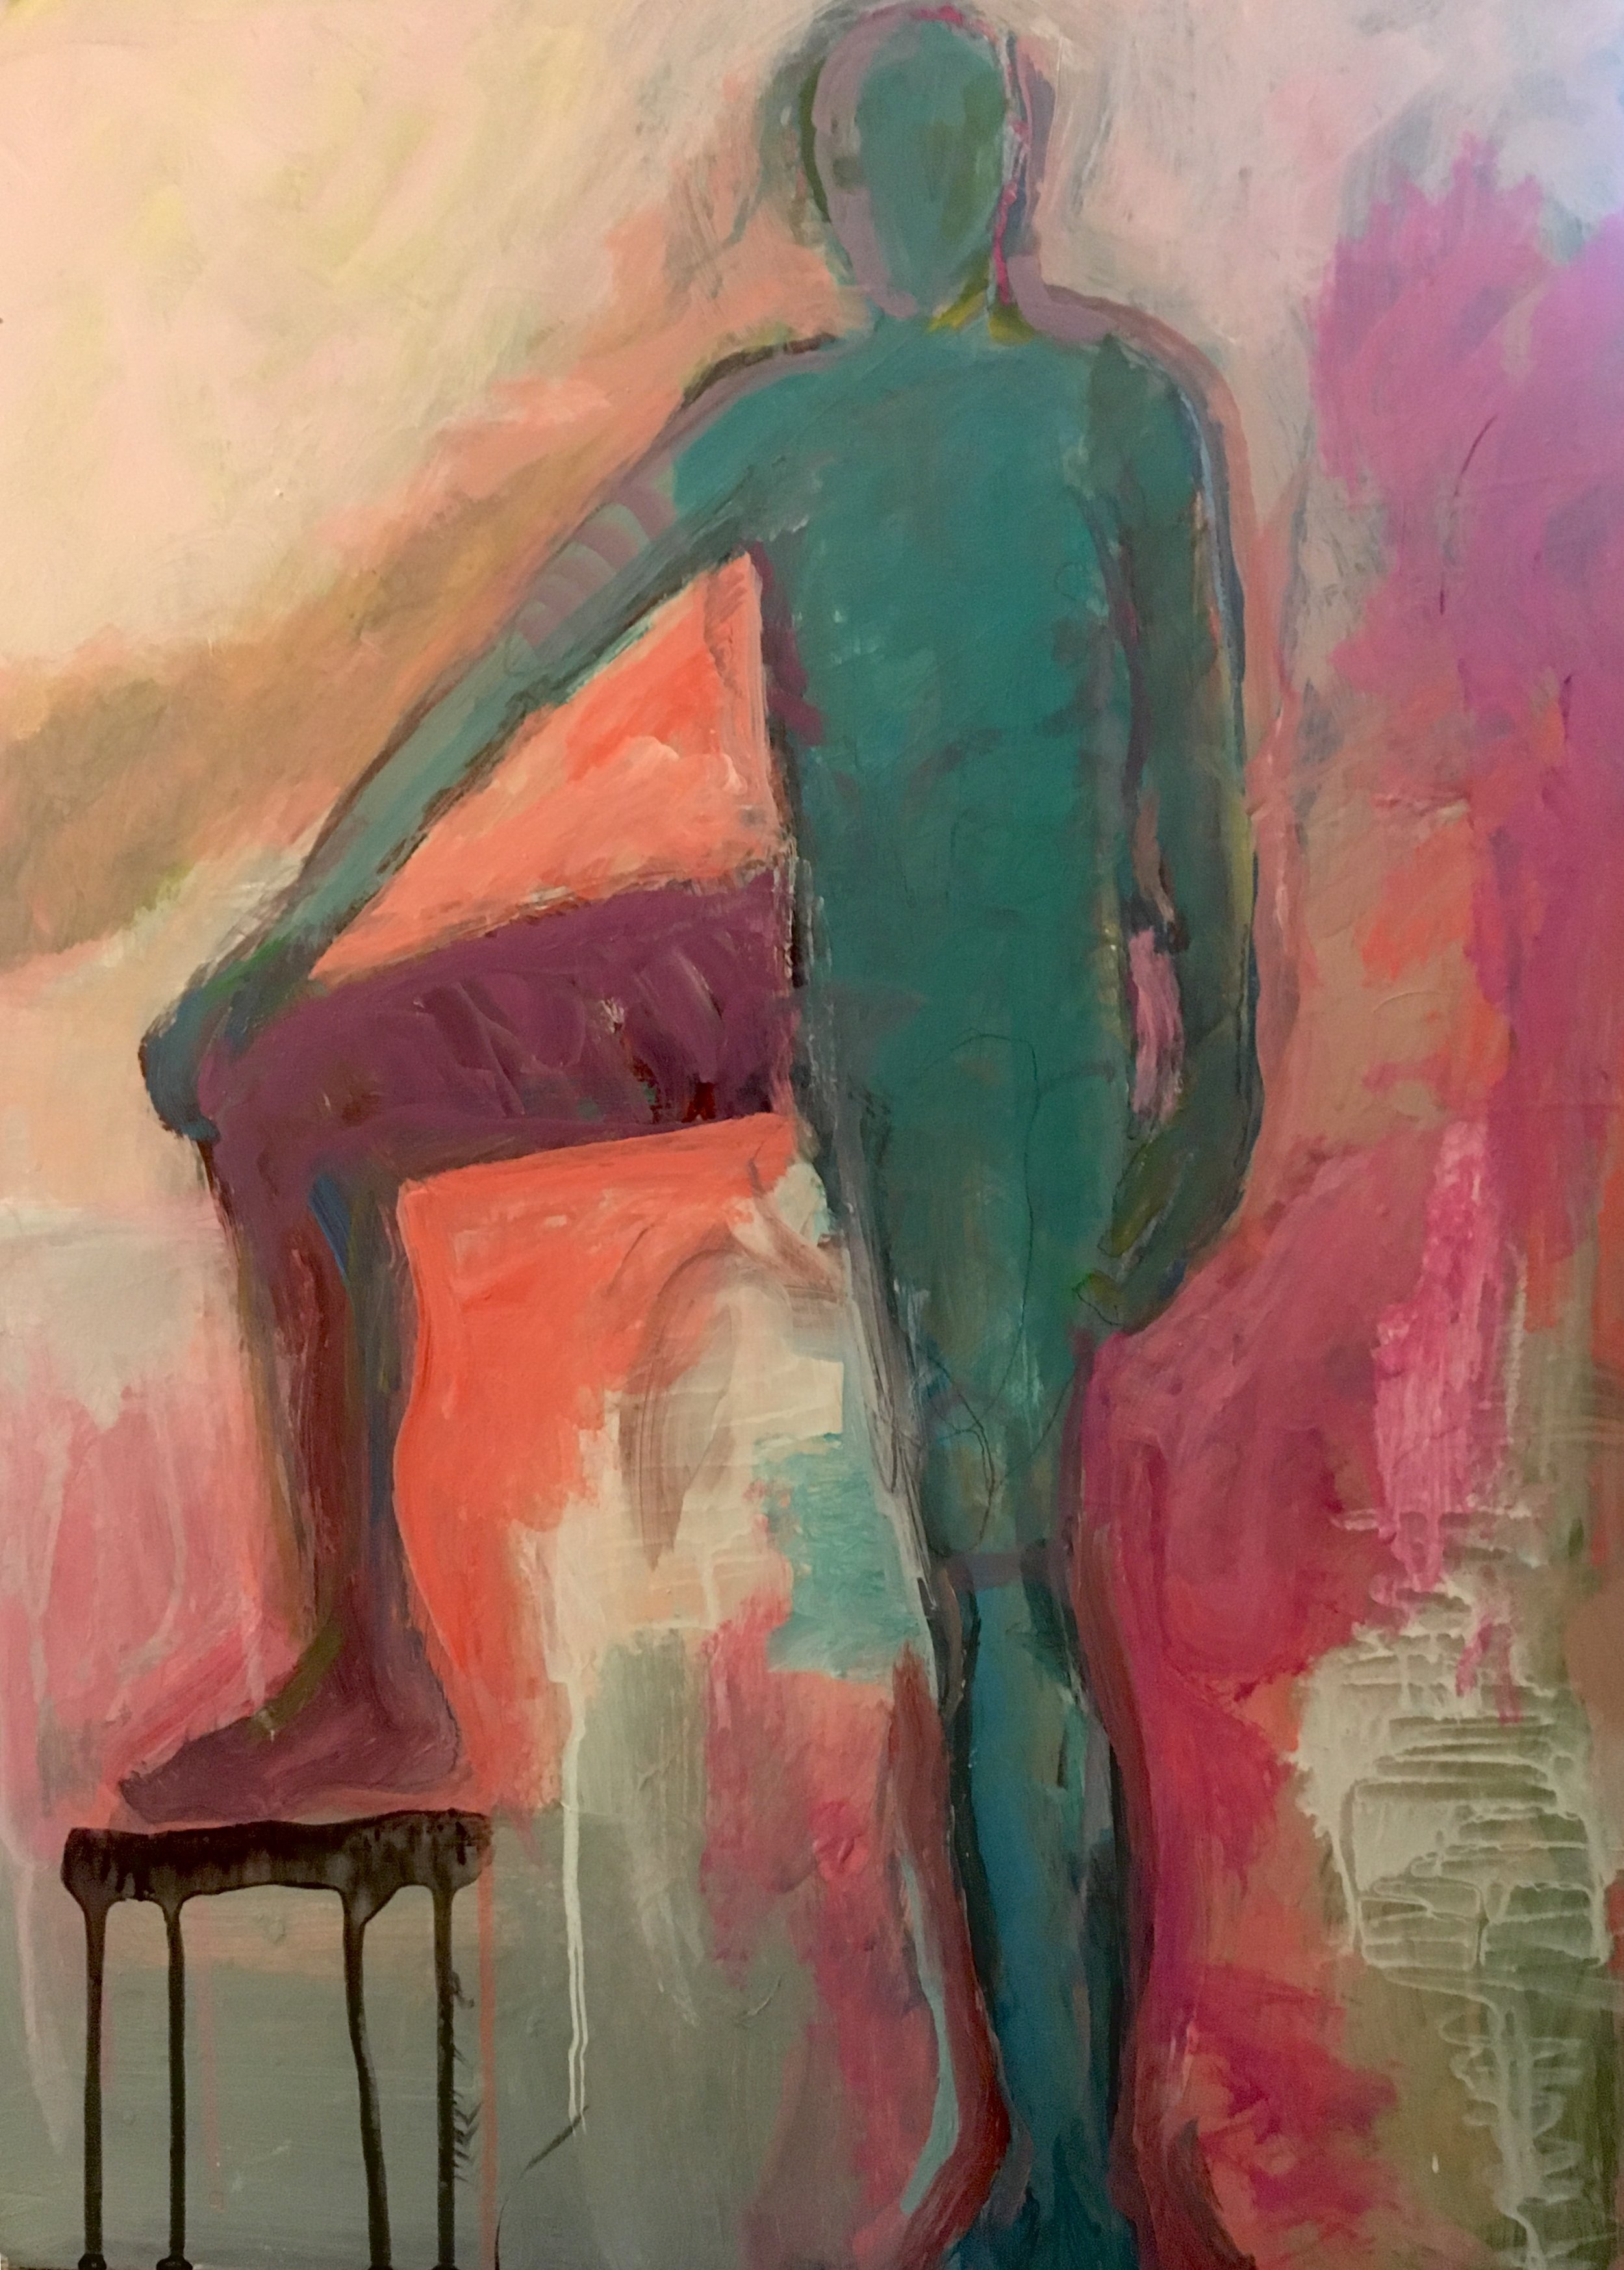 Green Male with Right Leg on Stool_ 2019, Acrylic_Mixed Media on museum board $1000